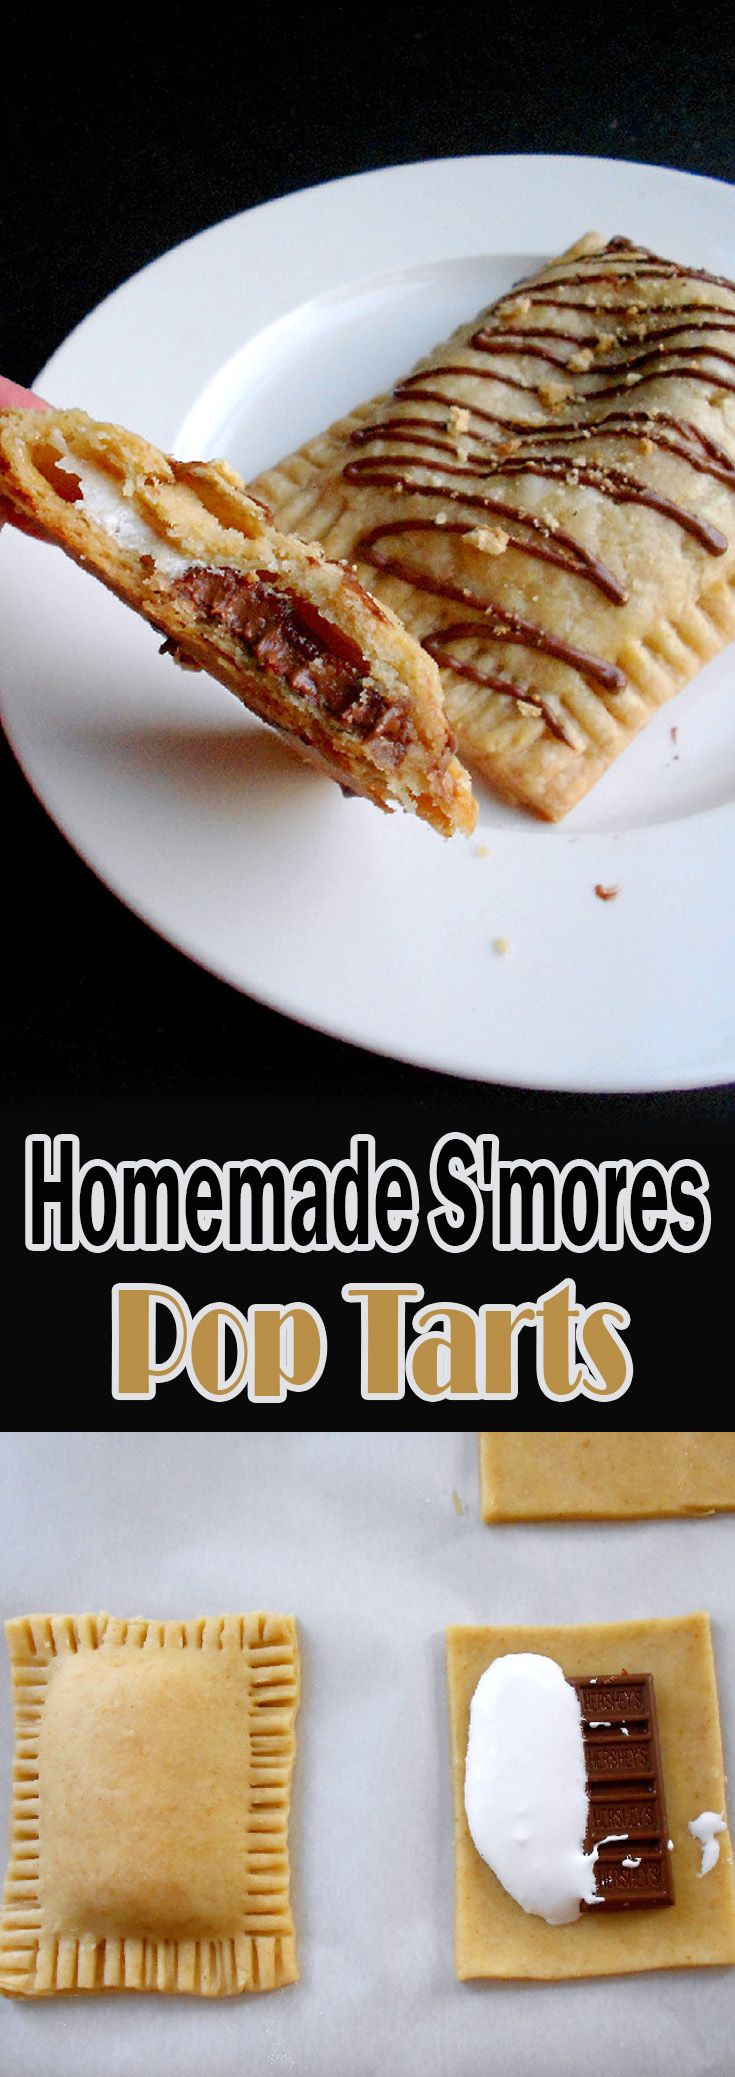 Homemade S'mores Pop Tarts                                                                                                                                                                                 More